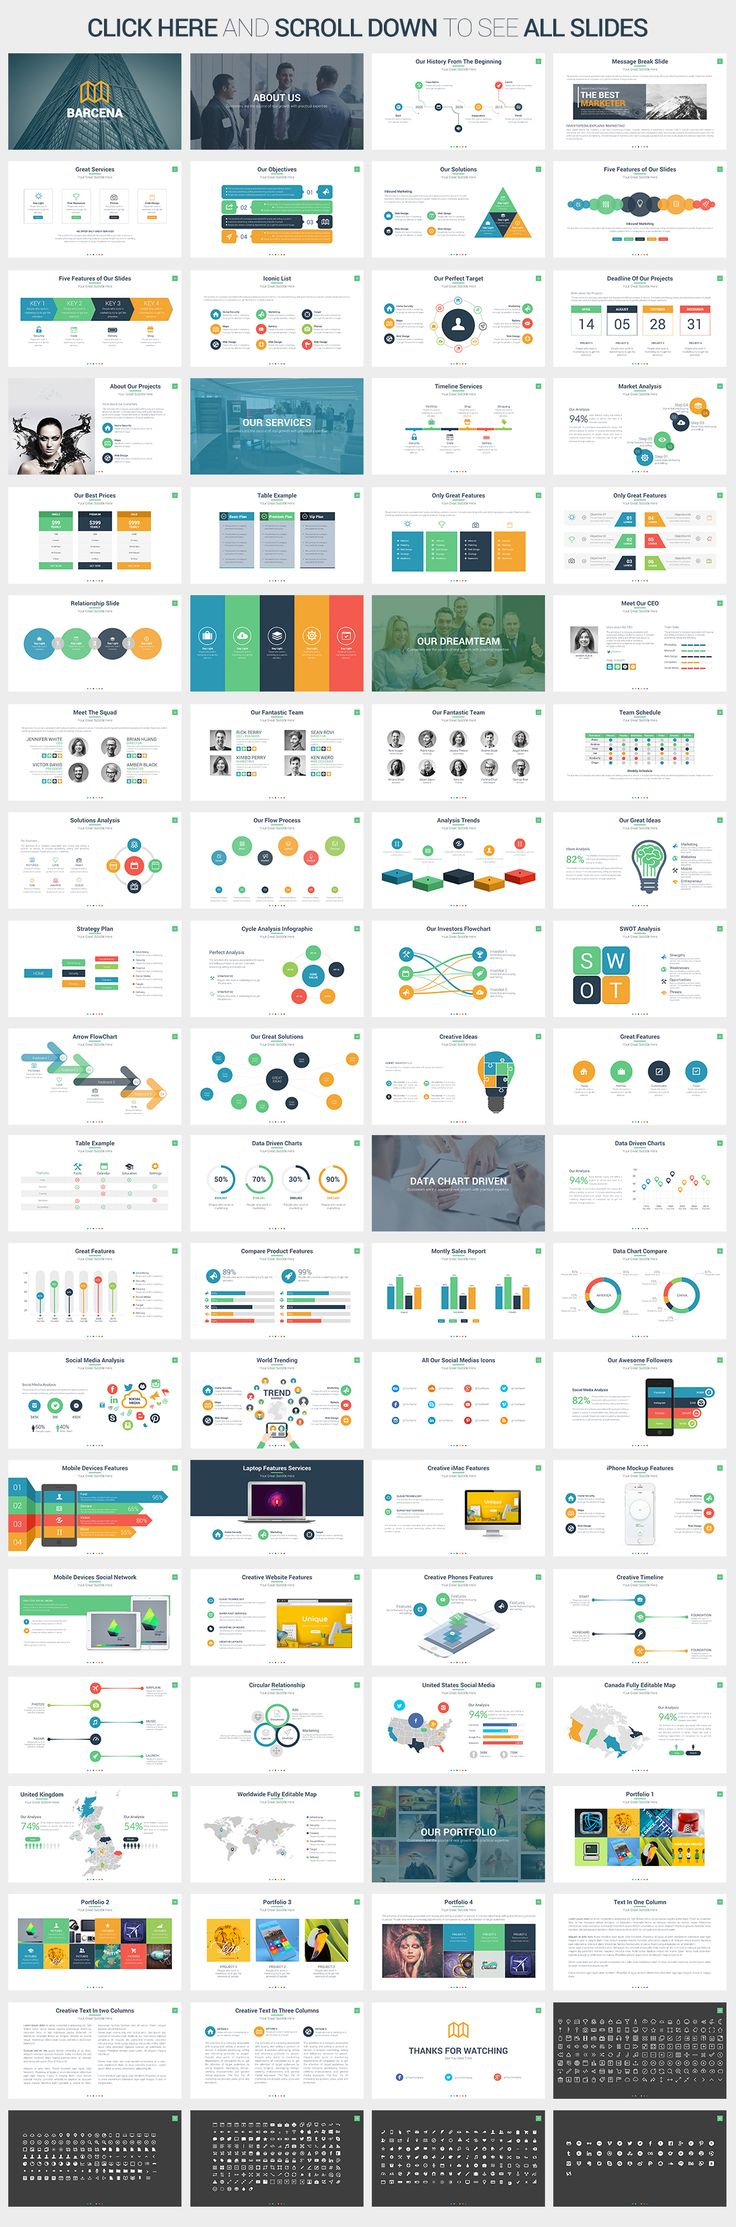 Barcena - Powerpoint Template by SlidePro on Creative Market